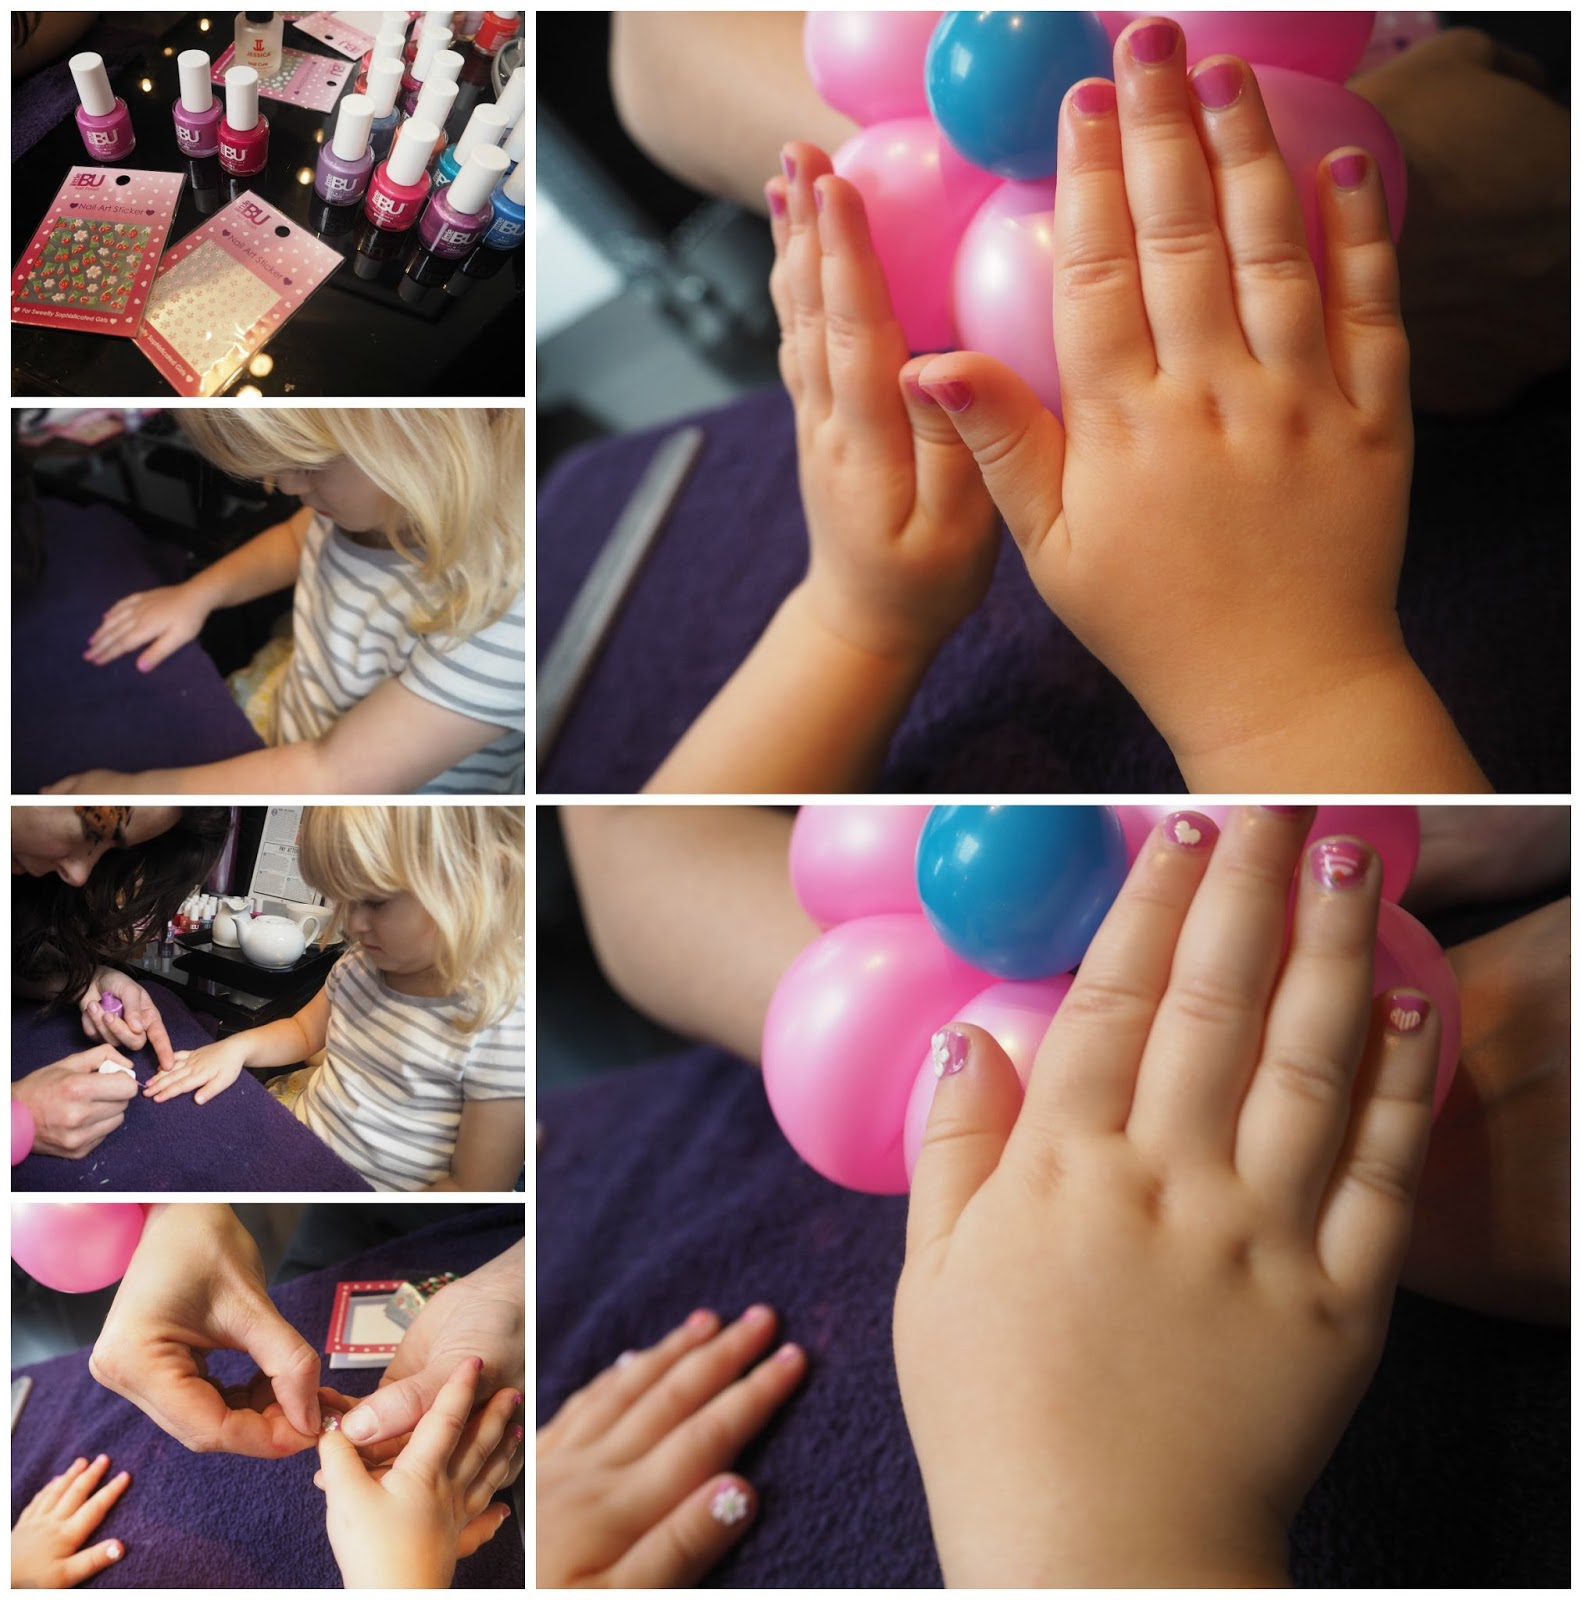 V. I. BASH: Hair, nails & a girly day out with Childs Farm… plus our fave toddler good hair essentials! | mamasVIB | childs farm | hair styles for kids | toddler hair essentials | top 9 essential for kids hair | detangling brushes  shampoo and detangled for kids | magic flower pot hair brush | tangle teezer for ids | munckin shampoo rinser | liberty of london hair clips | woodstock london sparkly mouse ears | knnie mouse style headband | woodstock accessories | cuddle dry | cuddle twist | hair tips for kids | hair towel for kids | super absorbent towel for hair | neveill hair and beauty | hair salon | superdrug | beauty [produsts  blogger | stlist | halo braid | hair plaits | kids hair |giveaway | kids beauty competitions | mamasVIb | bonita turner | win